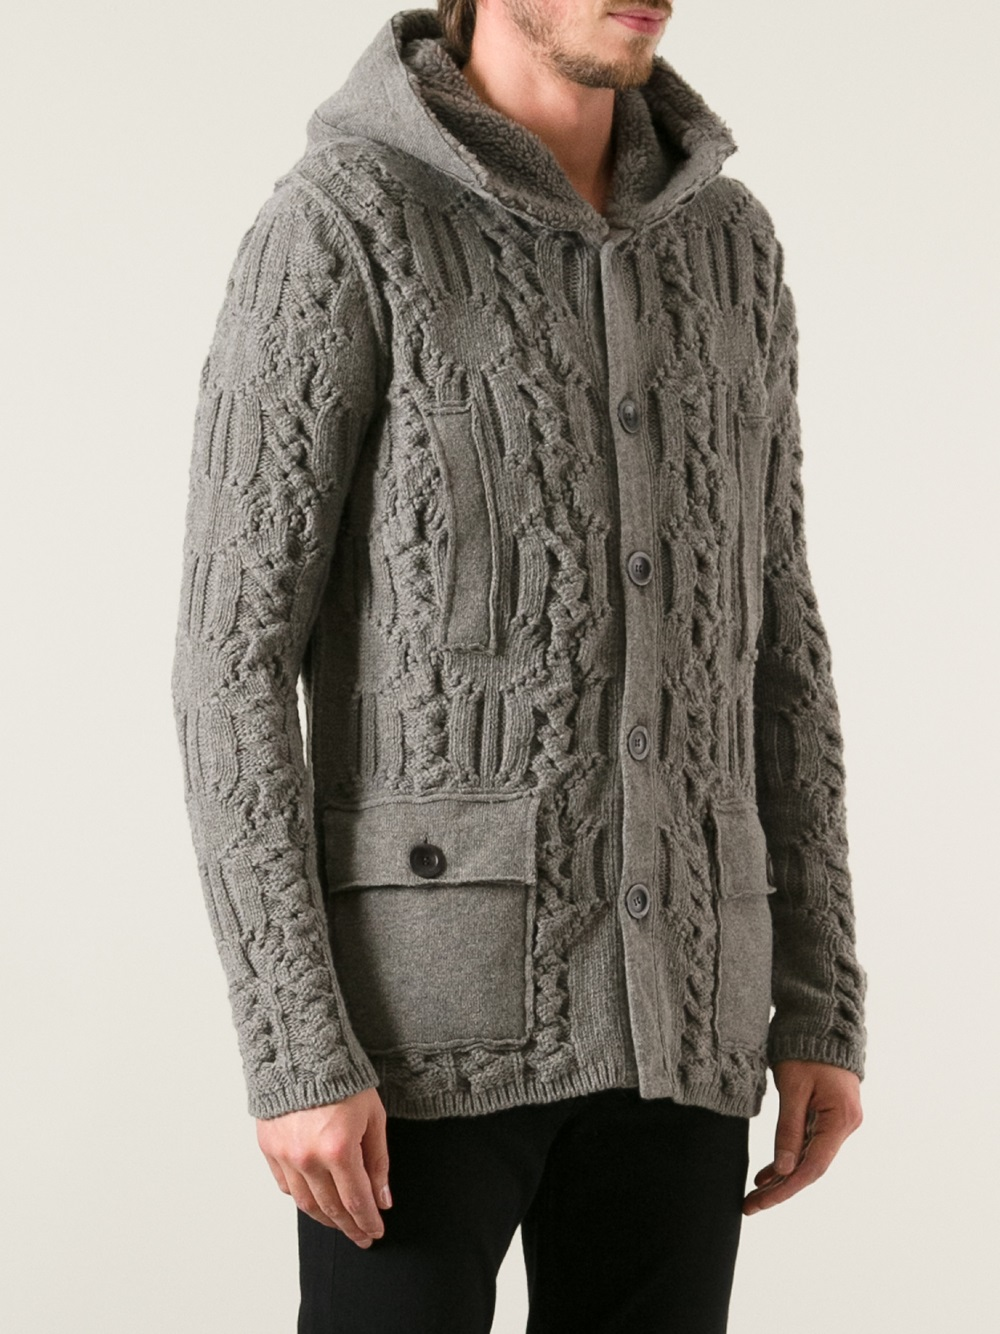 Paolo pecora Thick Knit Cardigan in Gray for Men | Lyst